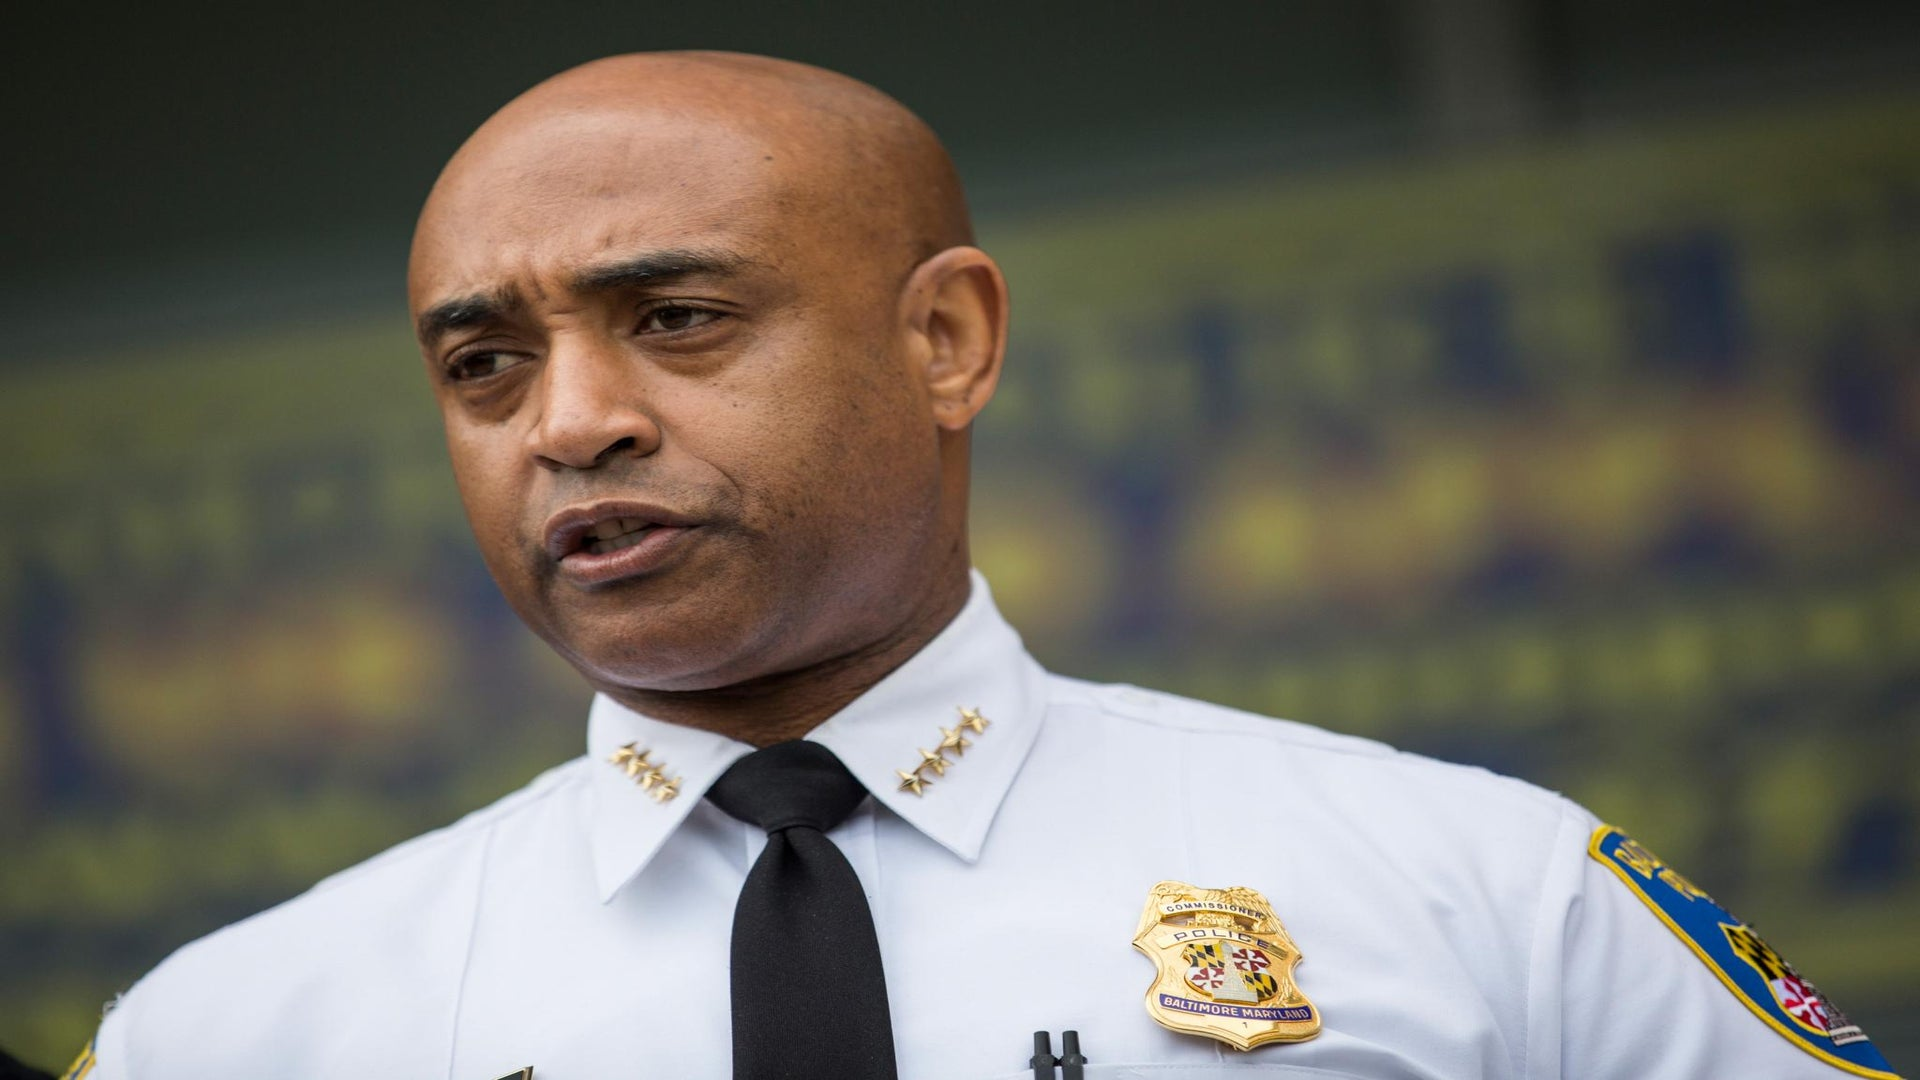 Baltimore Police Commissioner Anthony Batts: 'We Are Part of the Problem'